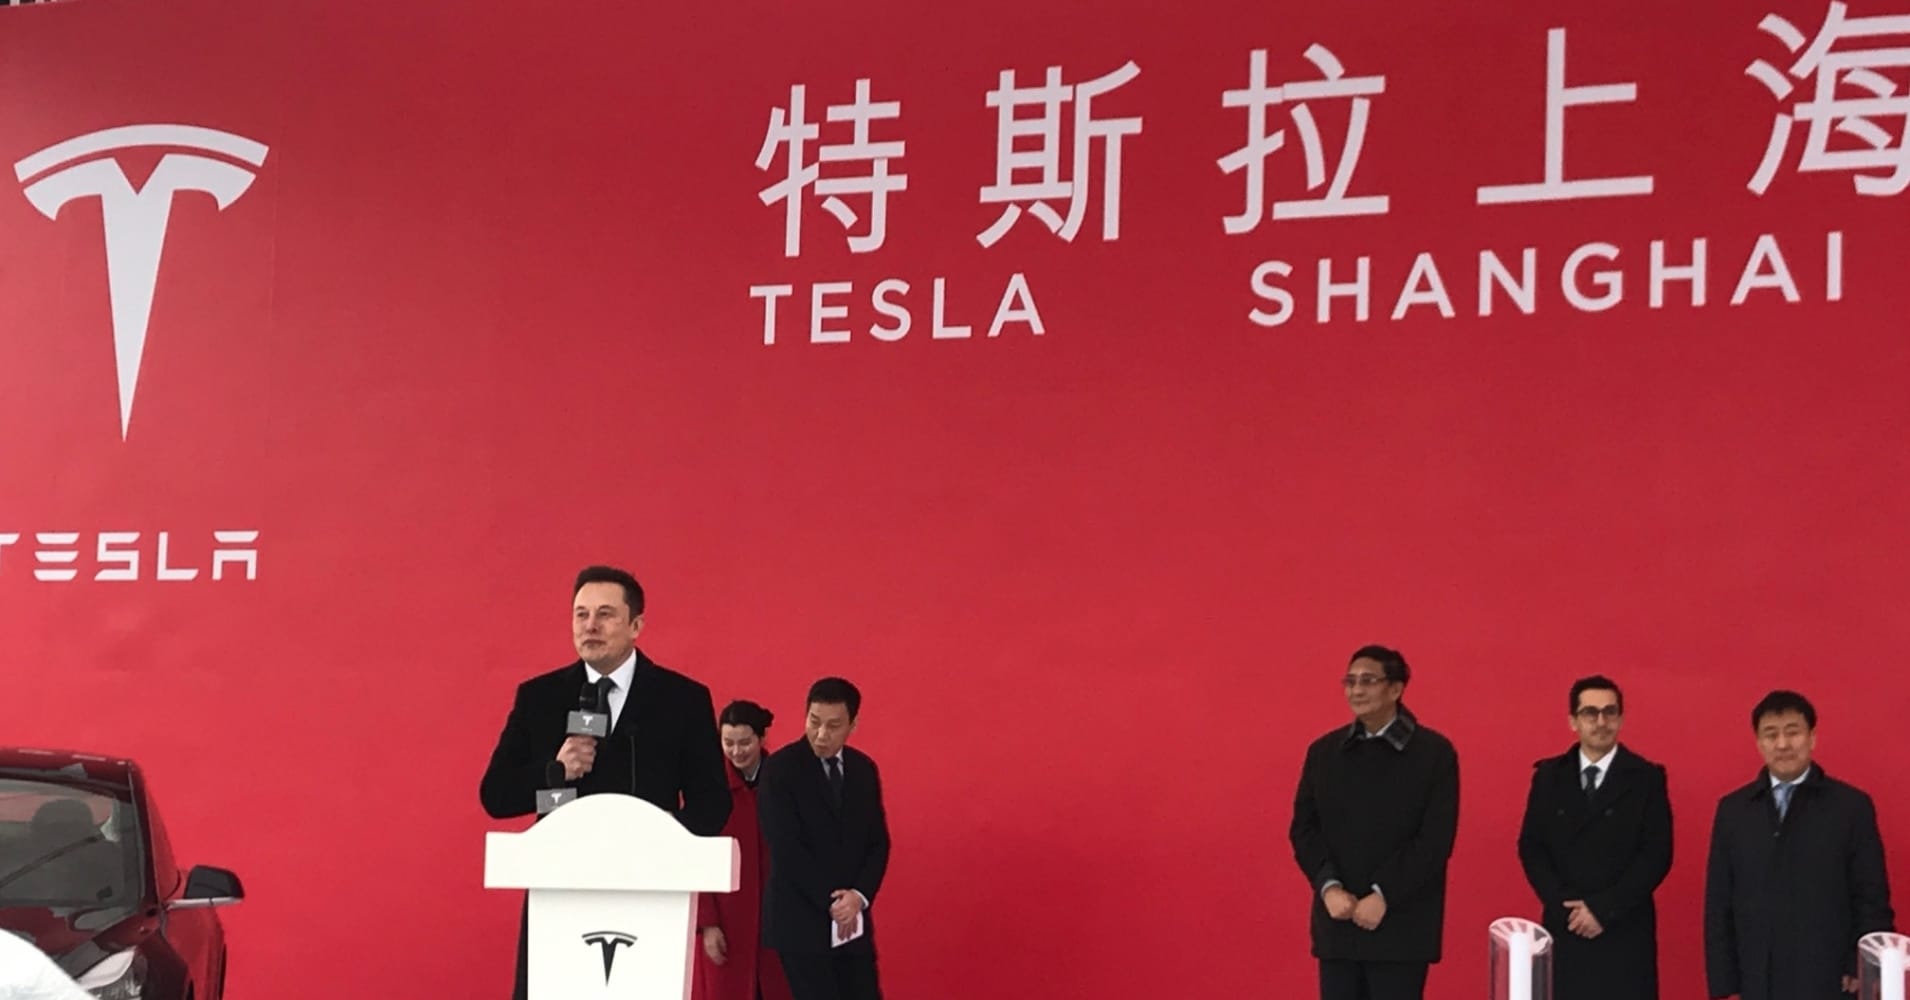 Tesla has grand ambitions in China but the electric vehicle maker faces  steep competition there